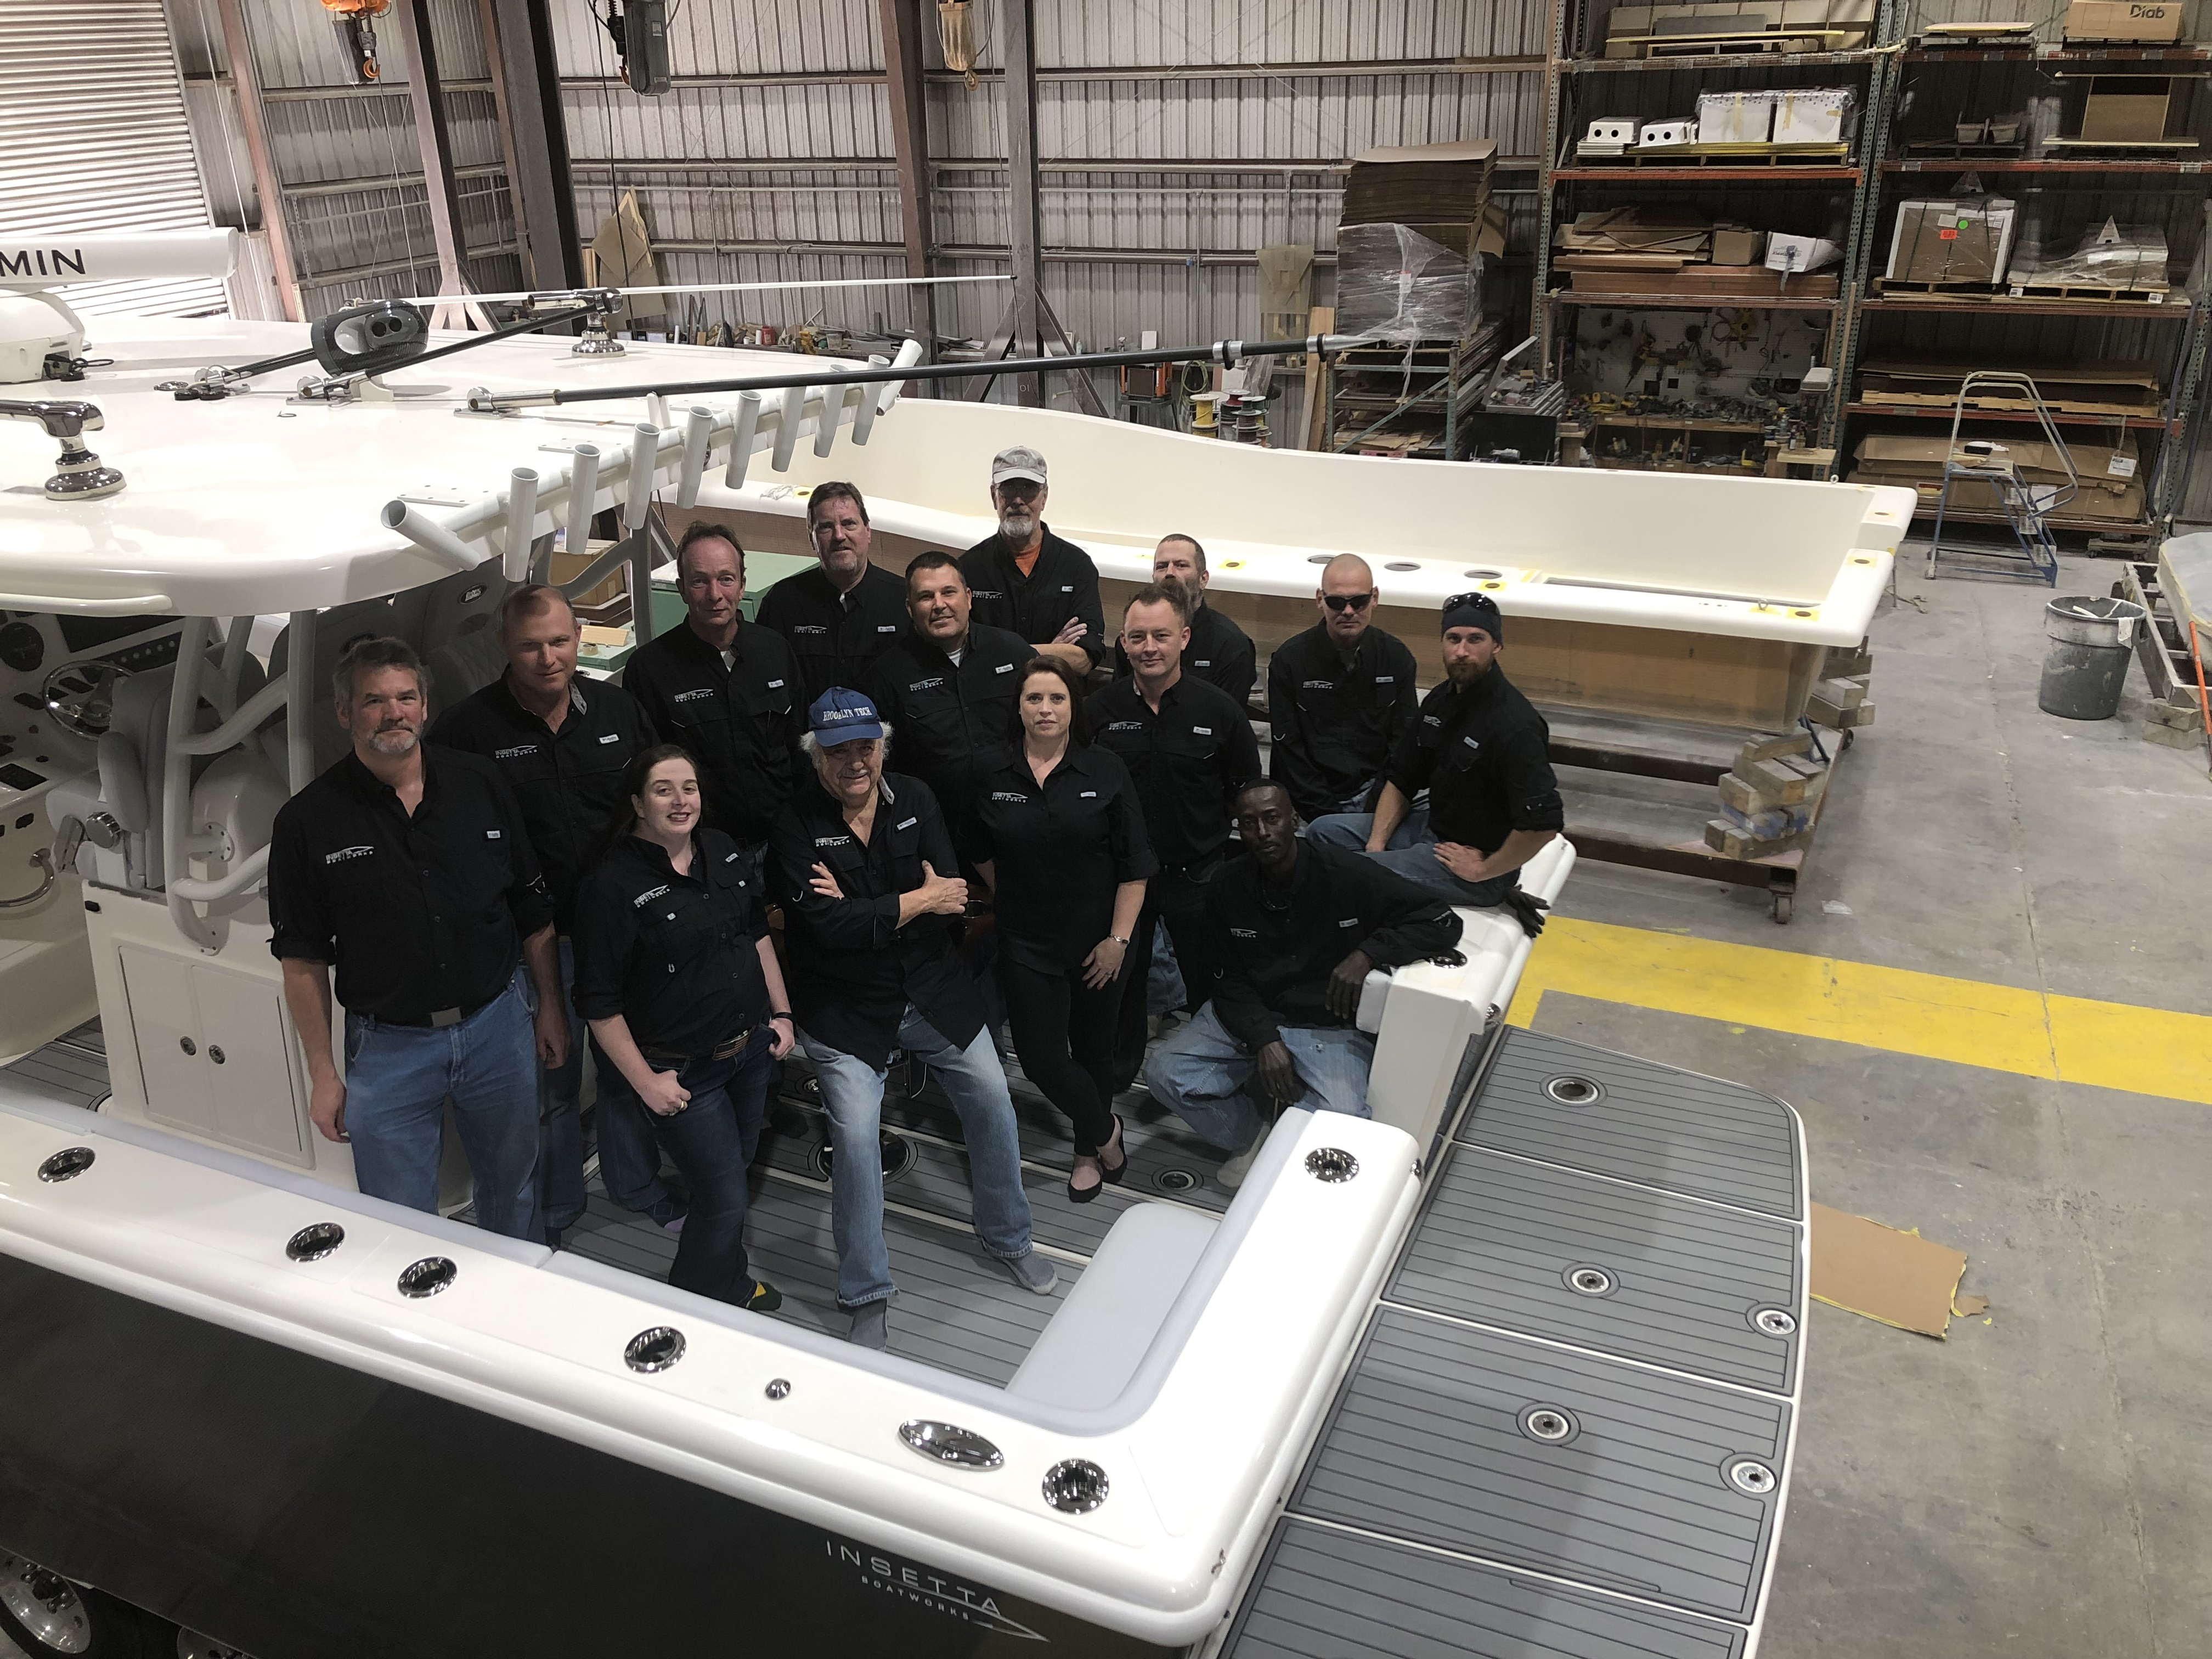 The Insetta Team at the Manufacturing Facility